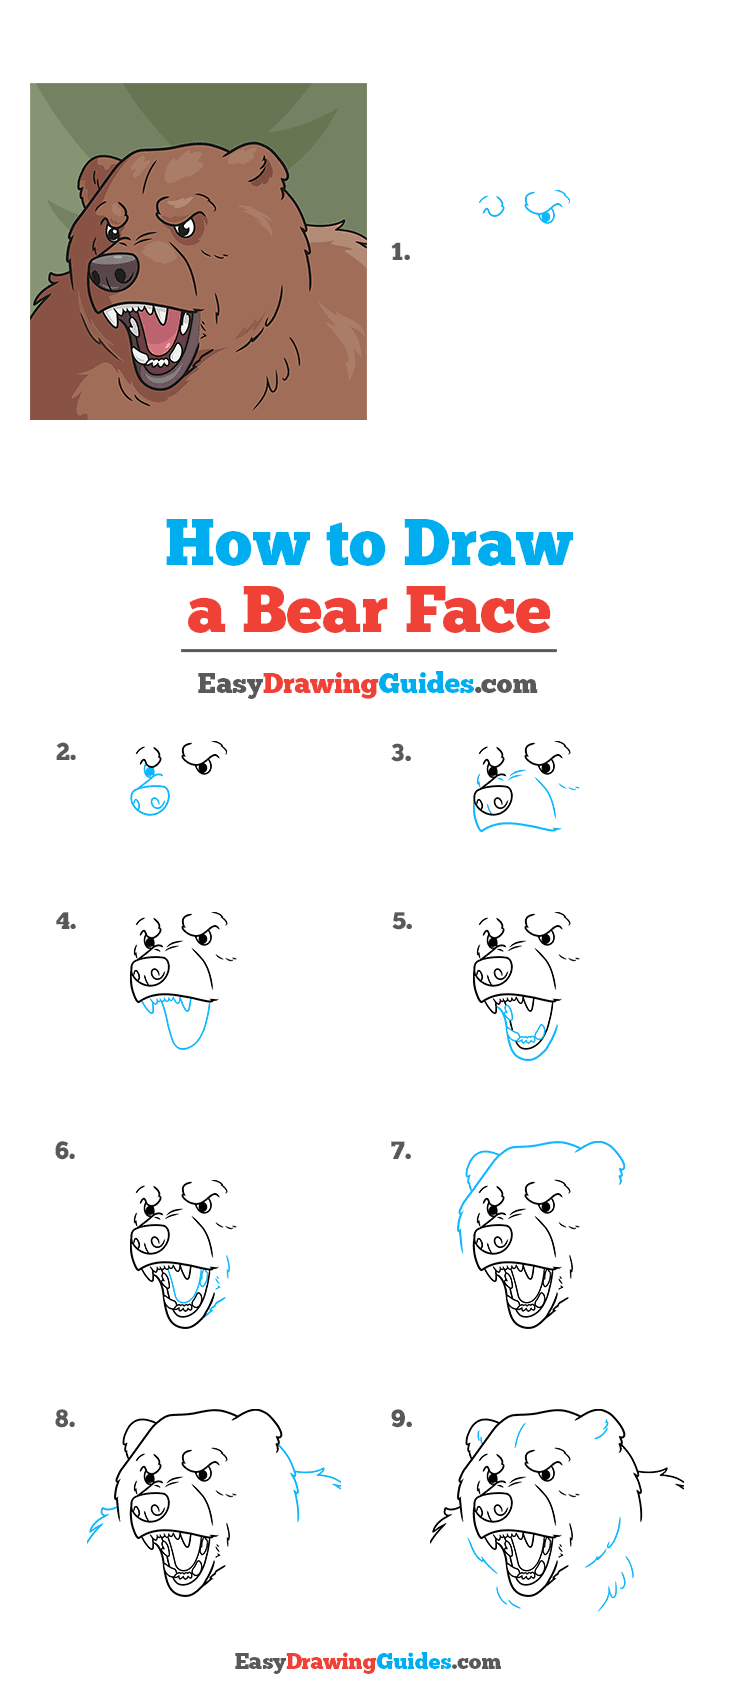 How to Draw a Bear Face Step by Step Tutorial Image